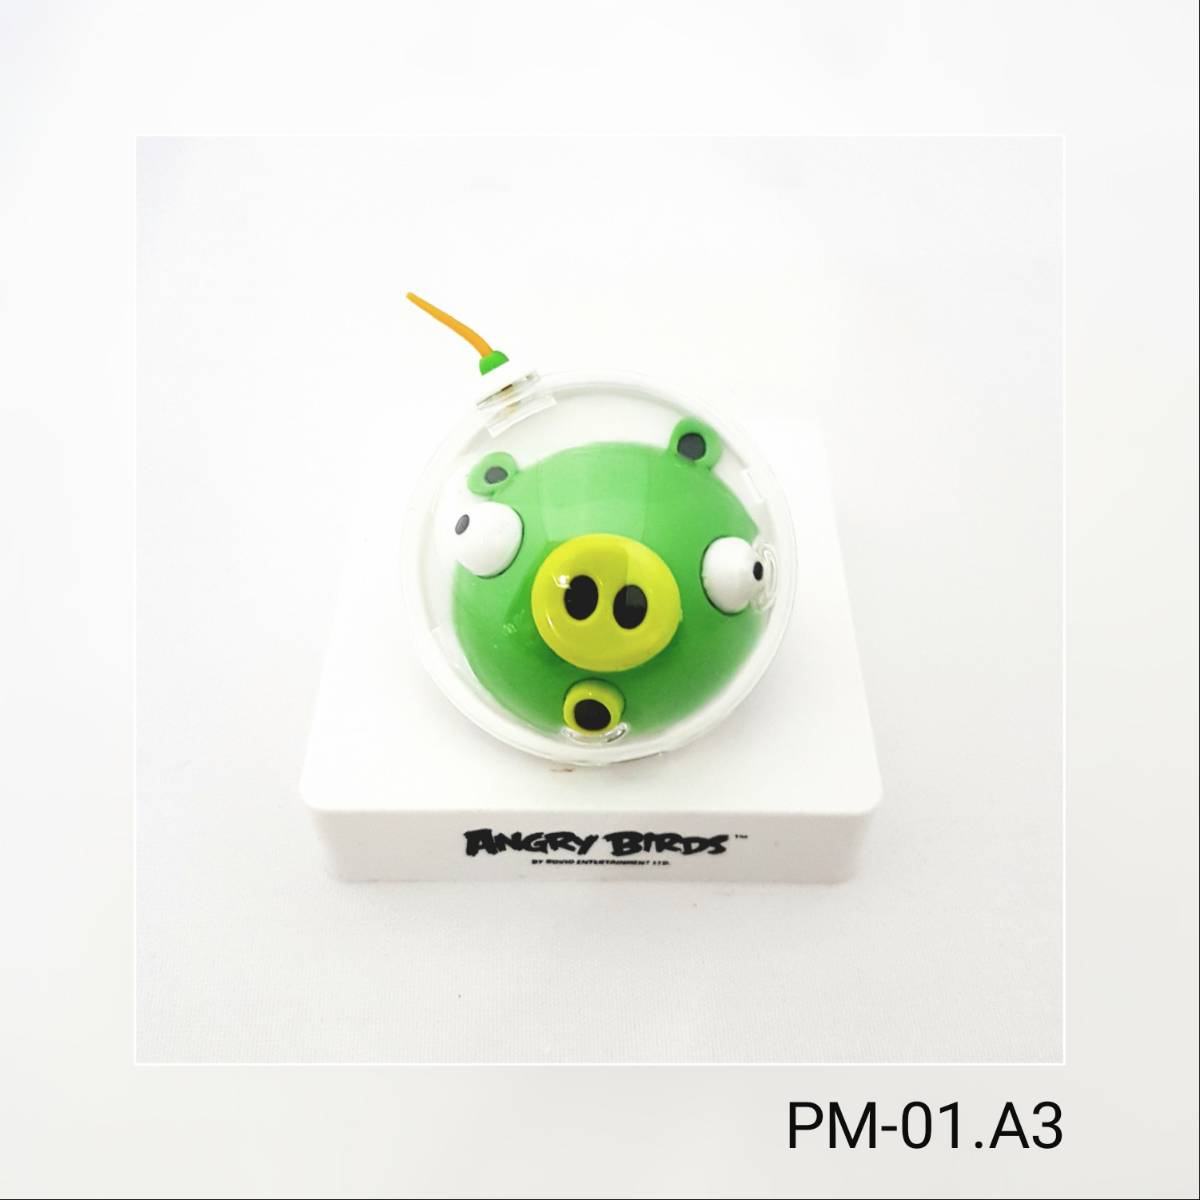 Parfum Mobil Angry Birds Collection Pm-001/a30